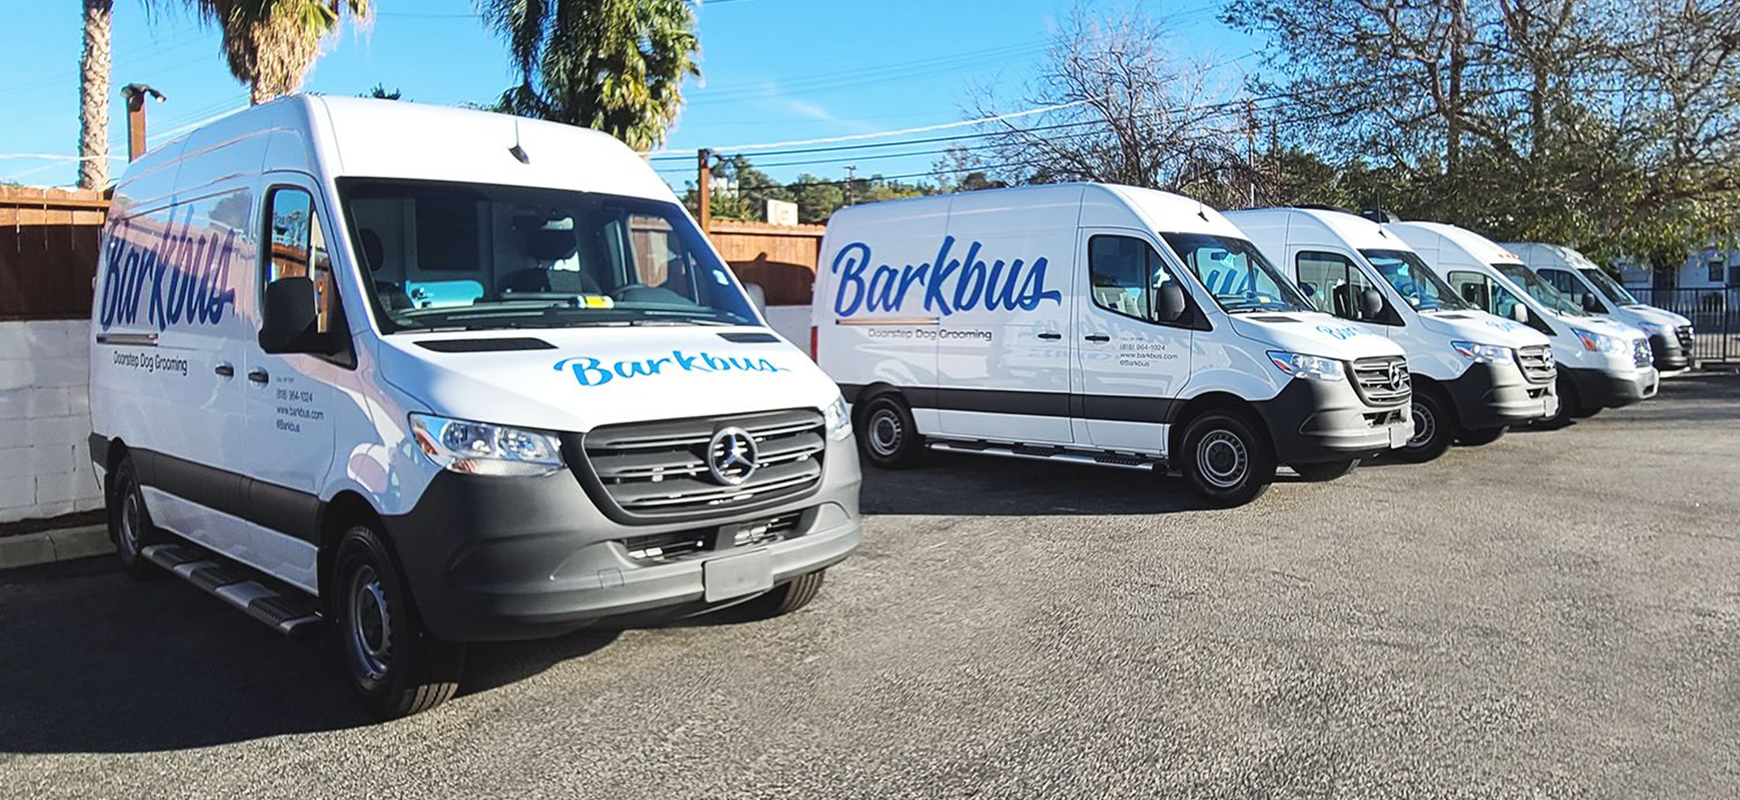 Barkbus vehicle branding with brand name decals made of opaque vinyl